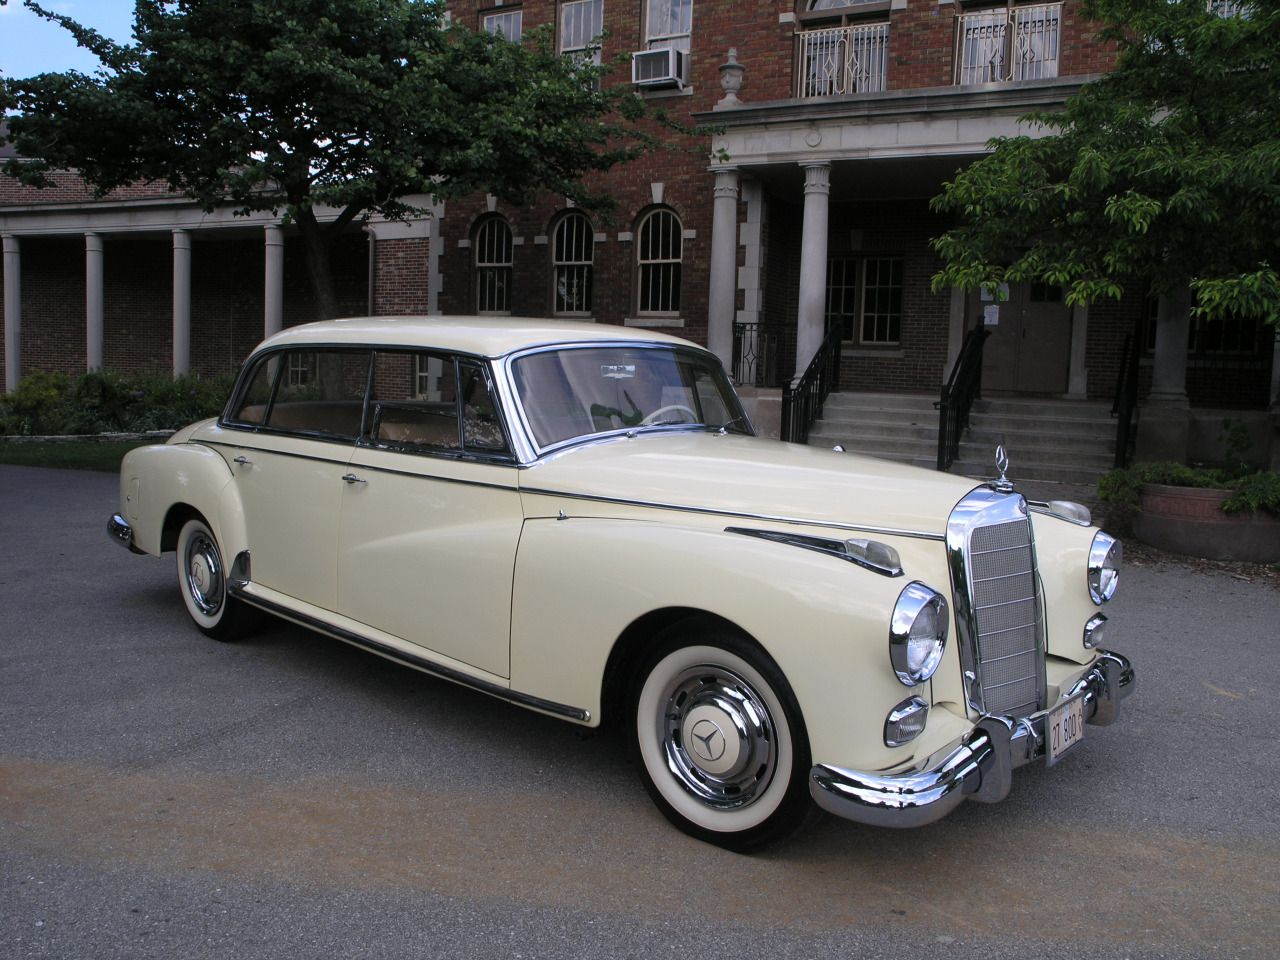 German cars after 1945 1960 mercedes 300 d for Mercedes benz vintage cars